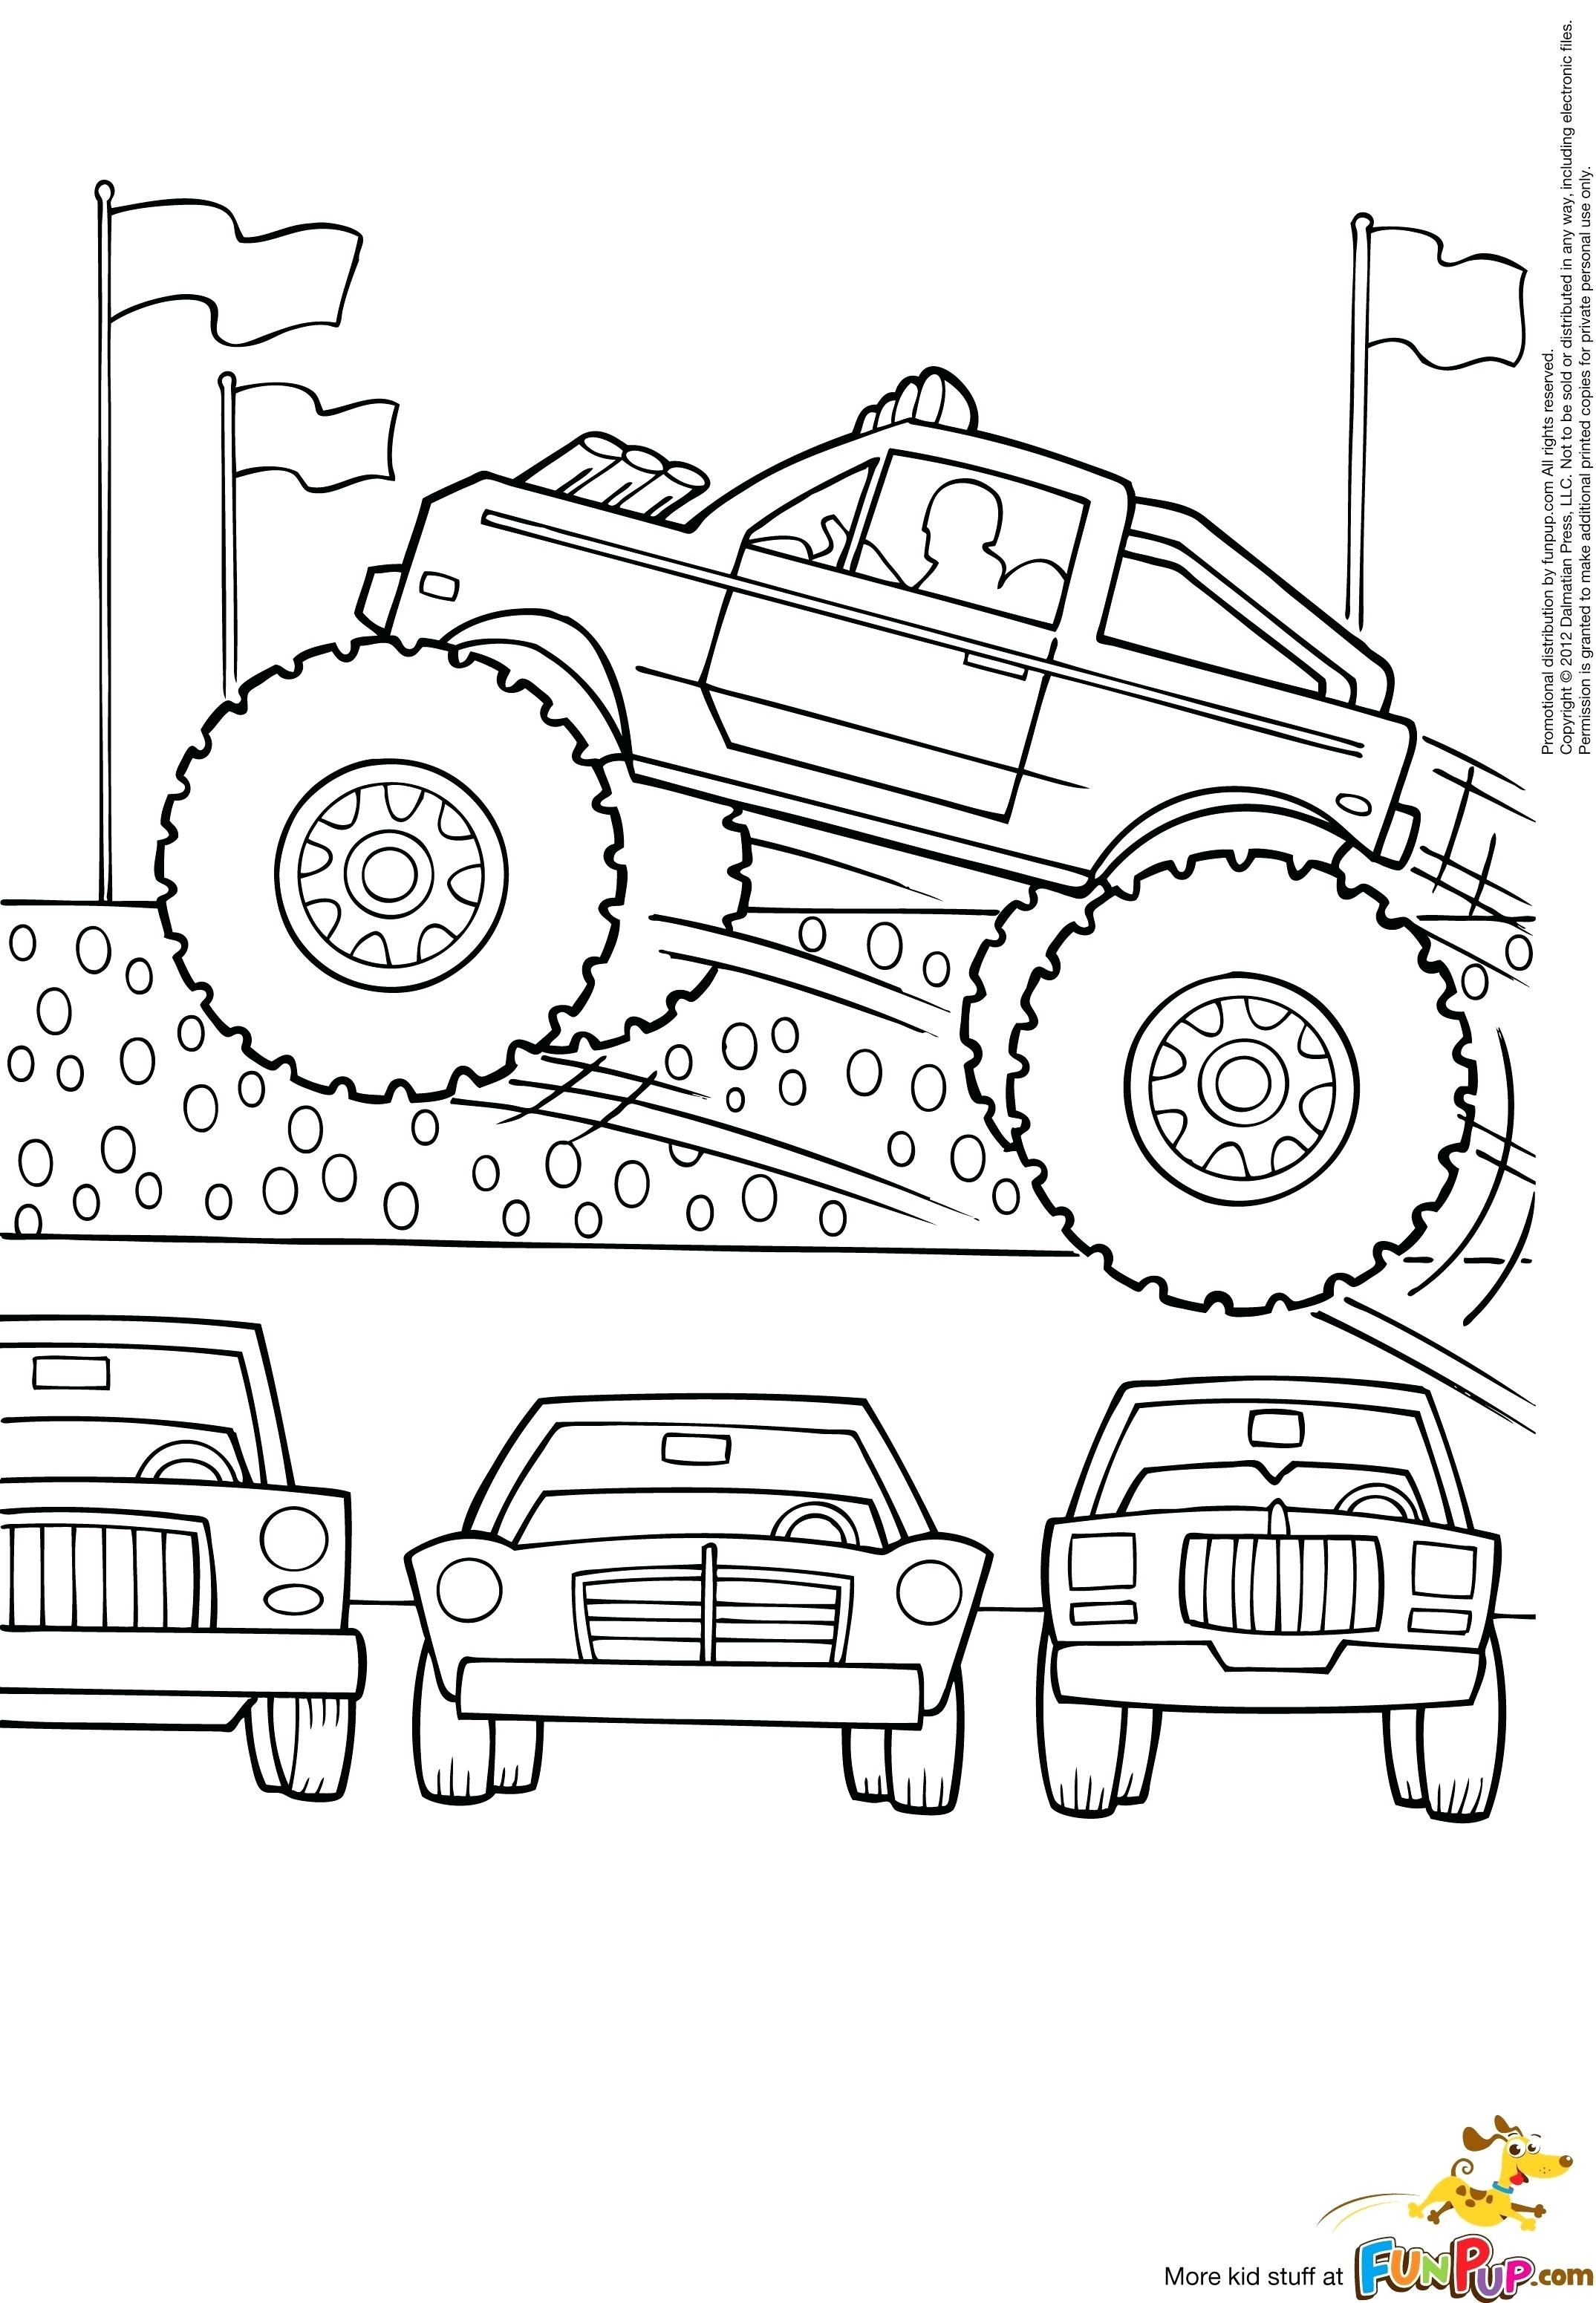 2149x3101 Drawing Monster Truck Coloring Pages With Kids To Print